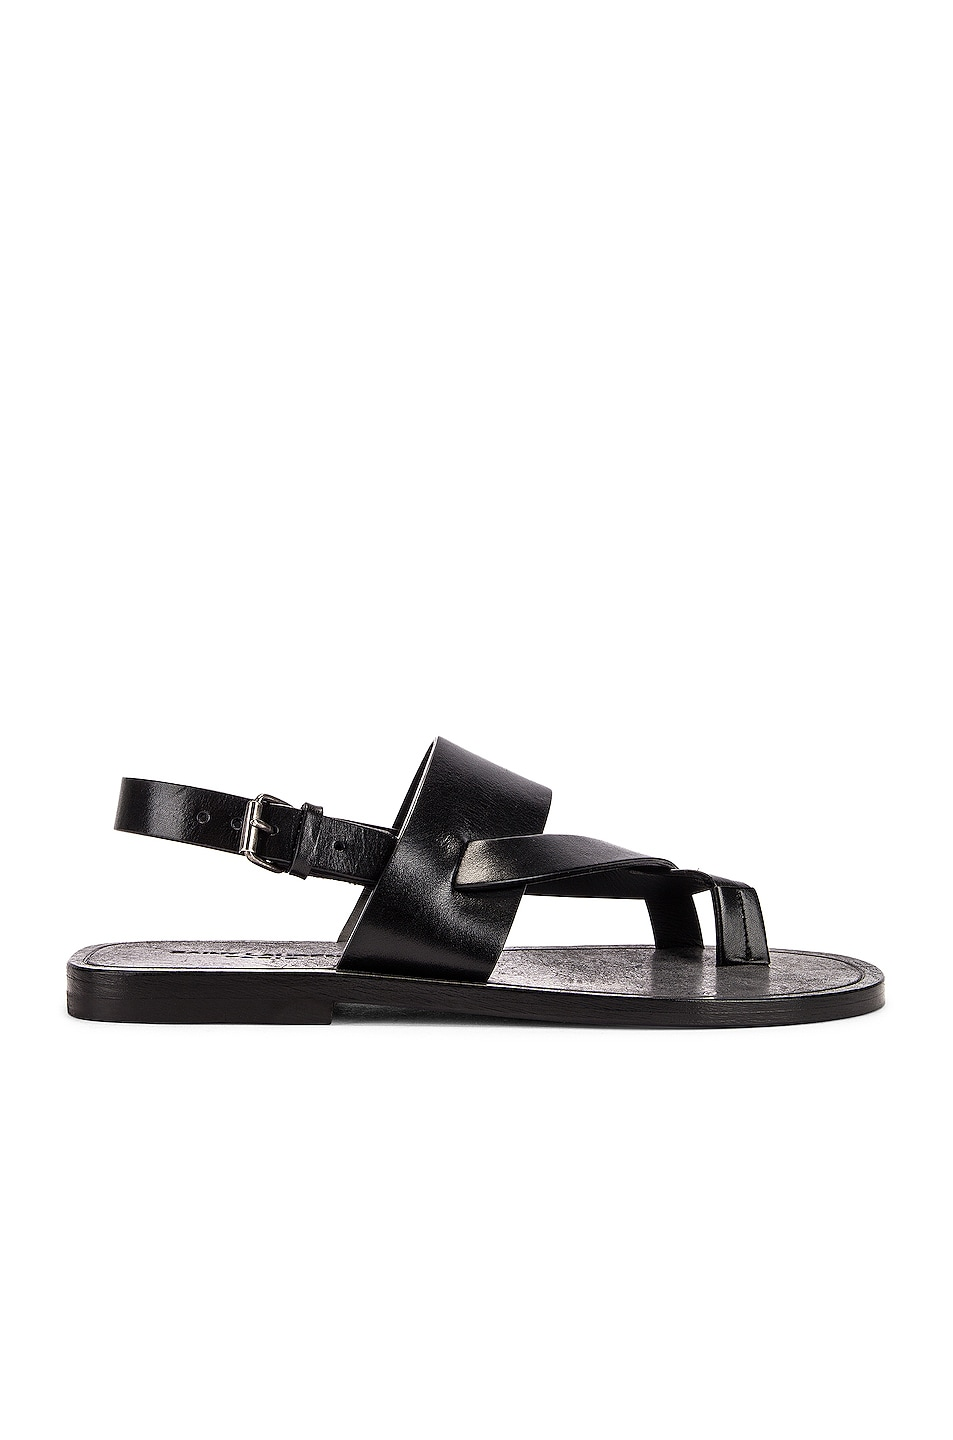 Image 1 of Saint Laurent Culver Buckle Sandals in Black